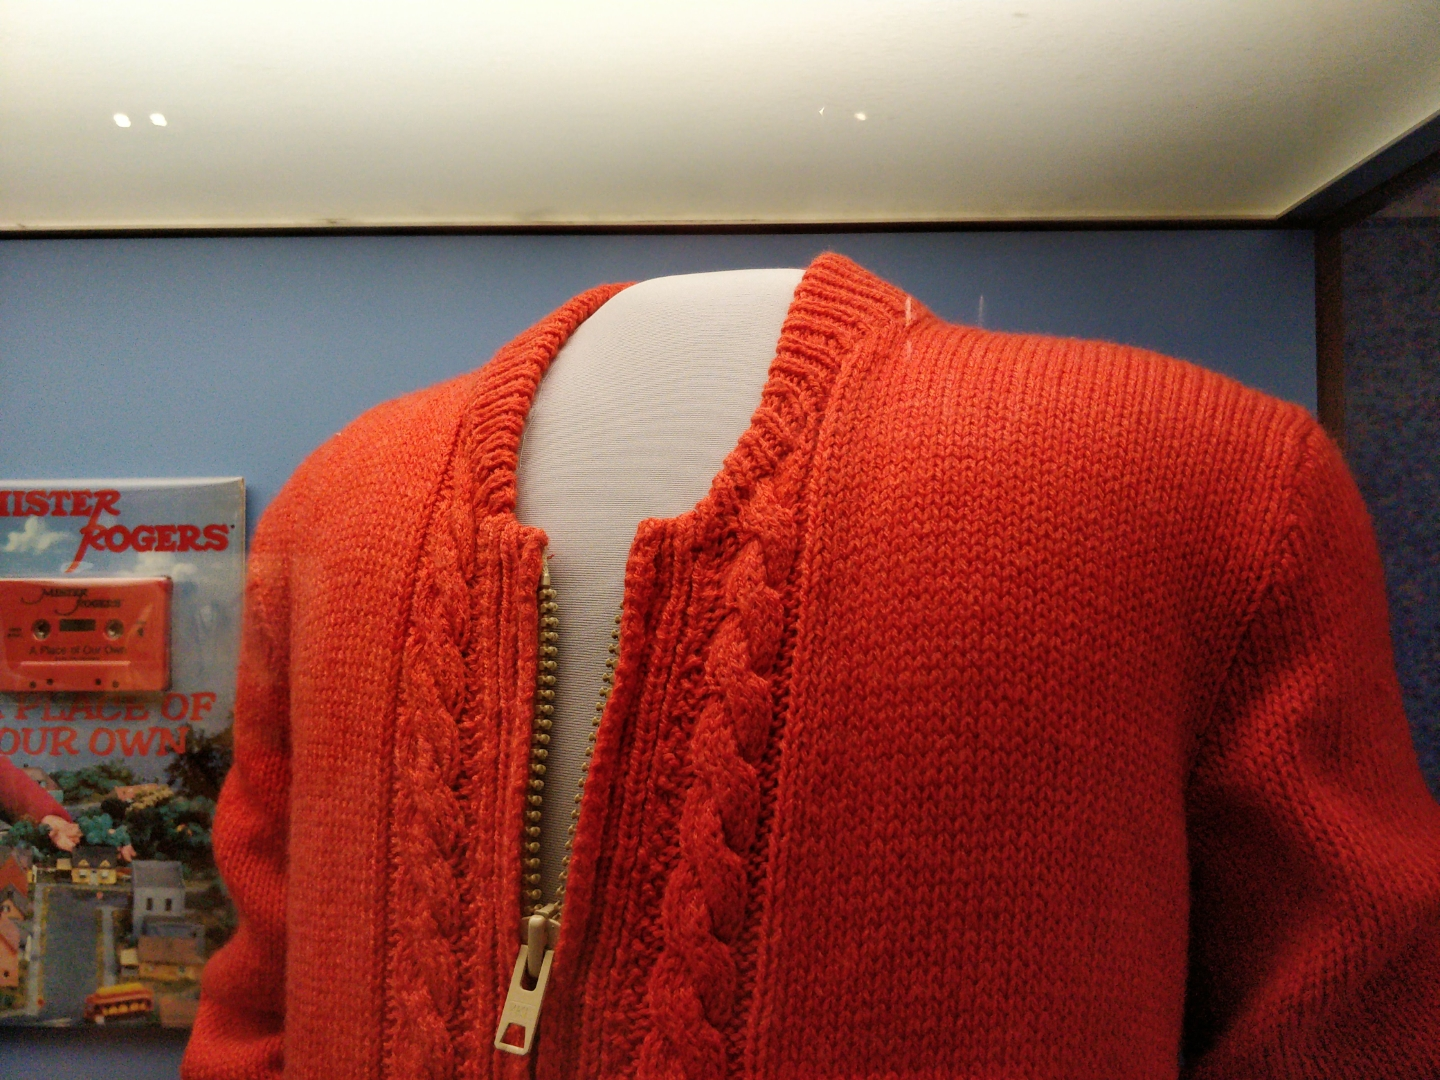 closer view of Mr. Rogers's sweater's collar and zipper pull